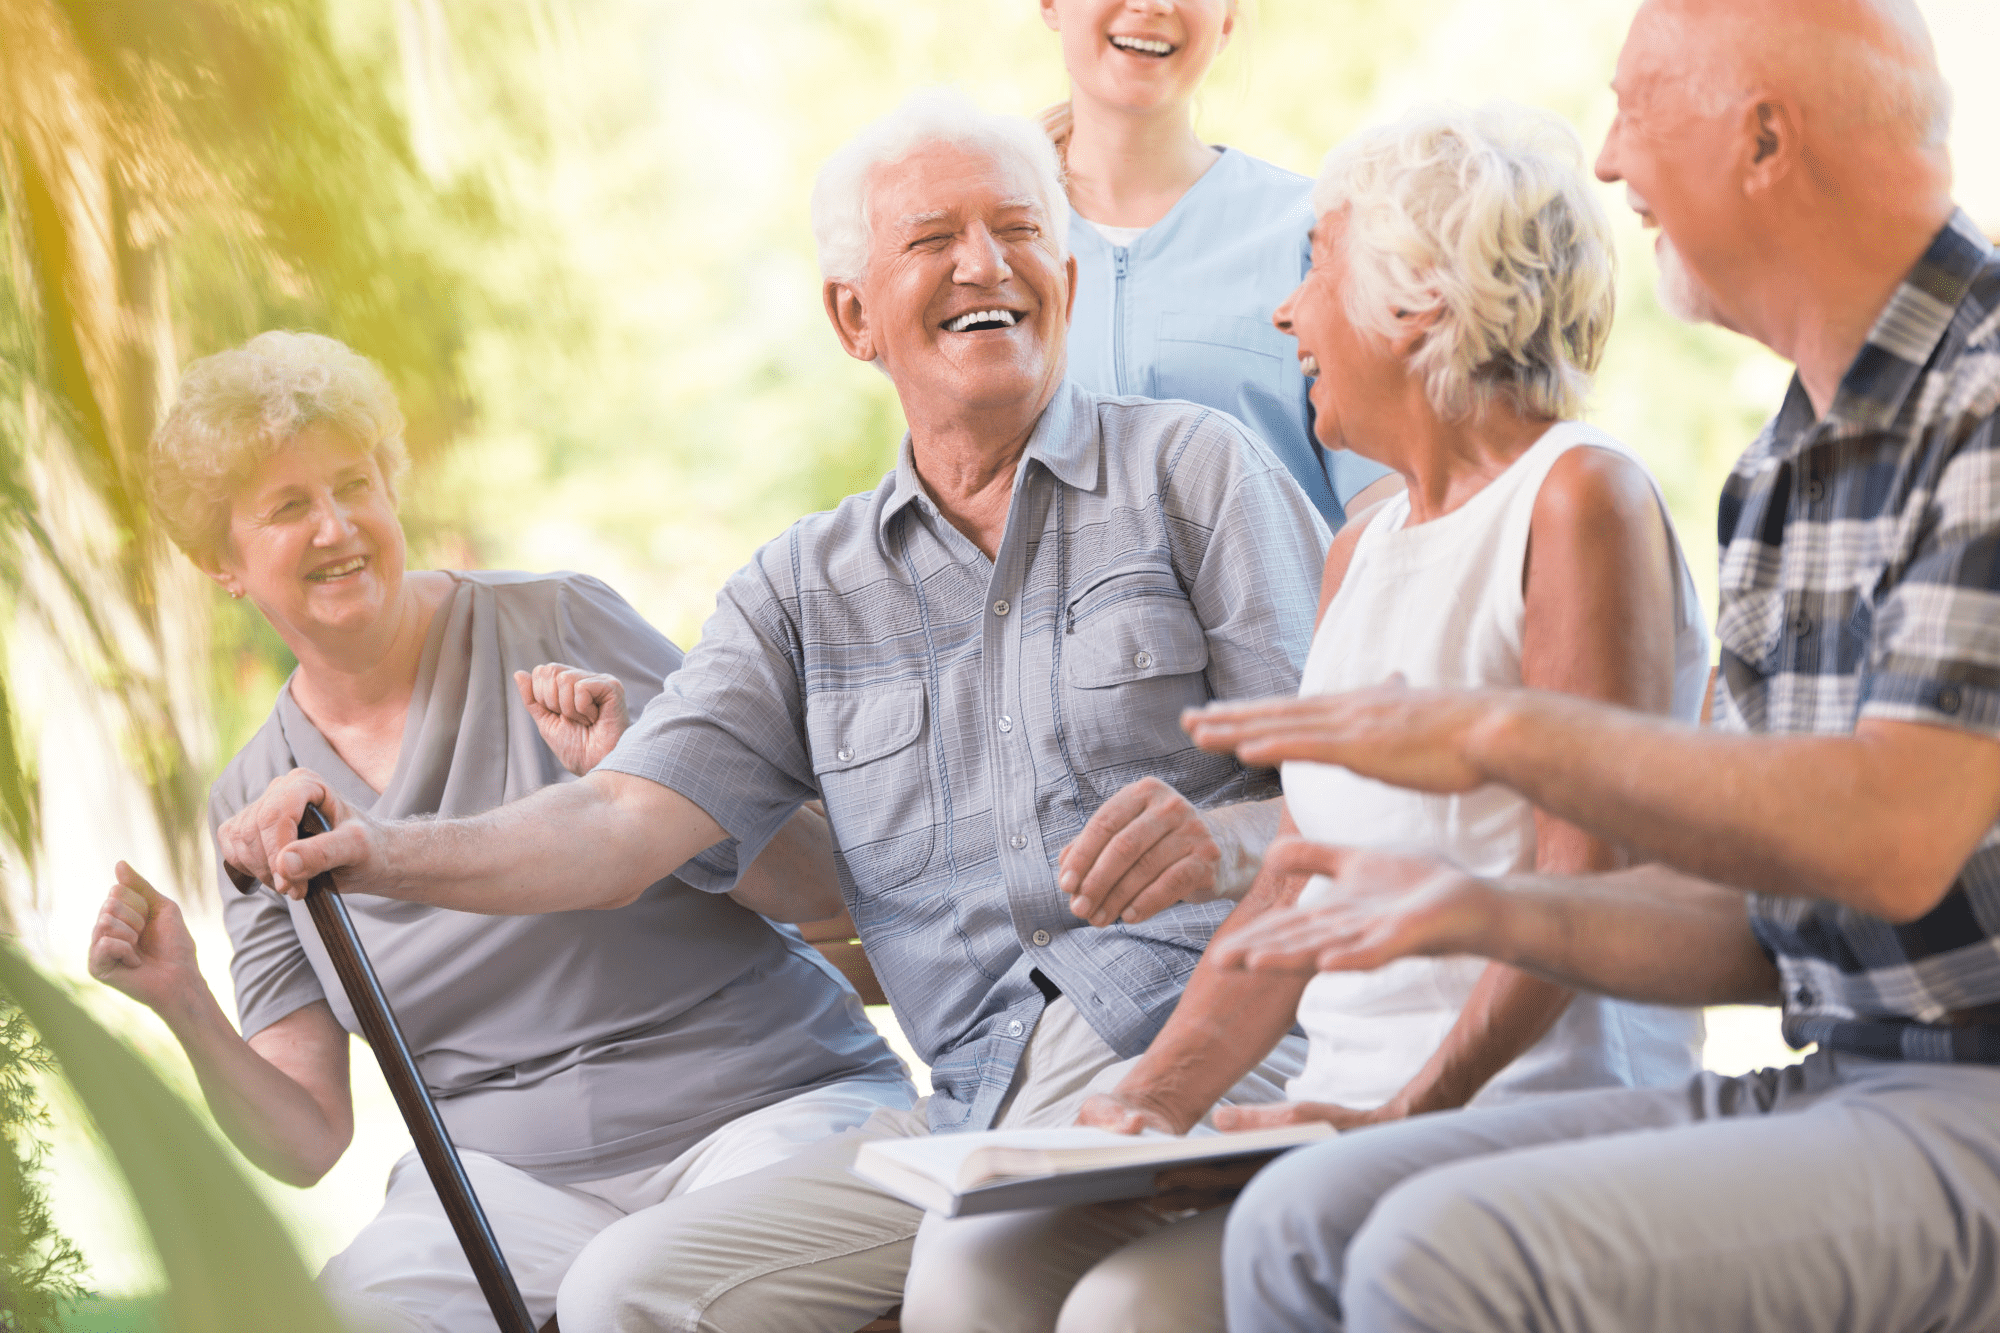 6 Questions to Ask Before Choosing a Retirement Residence